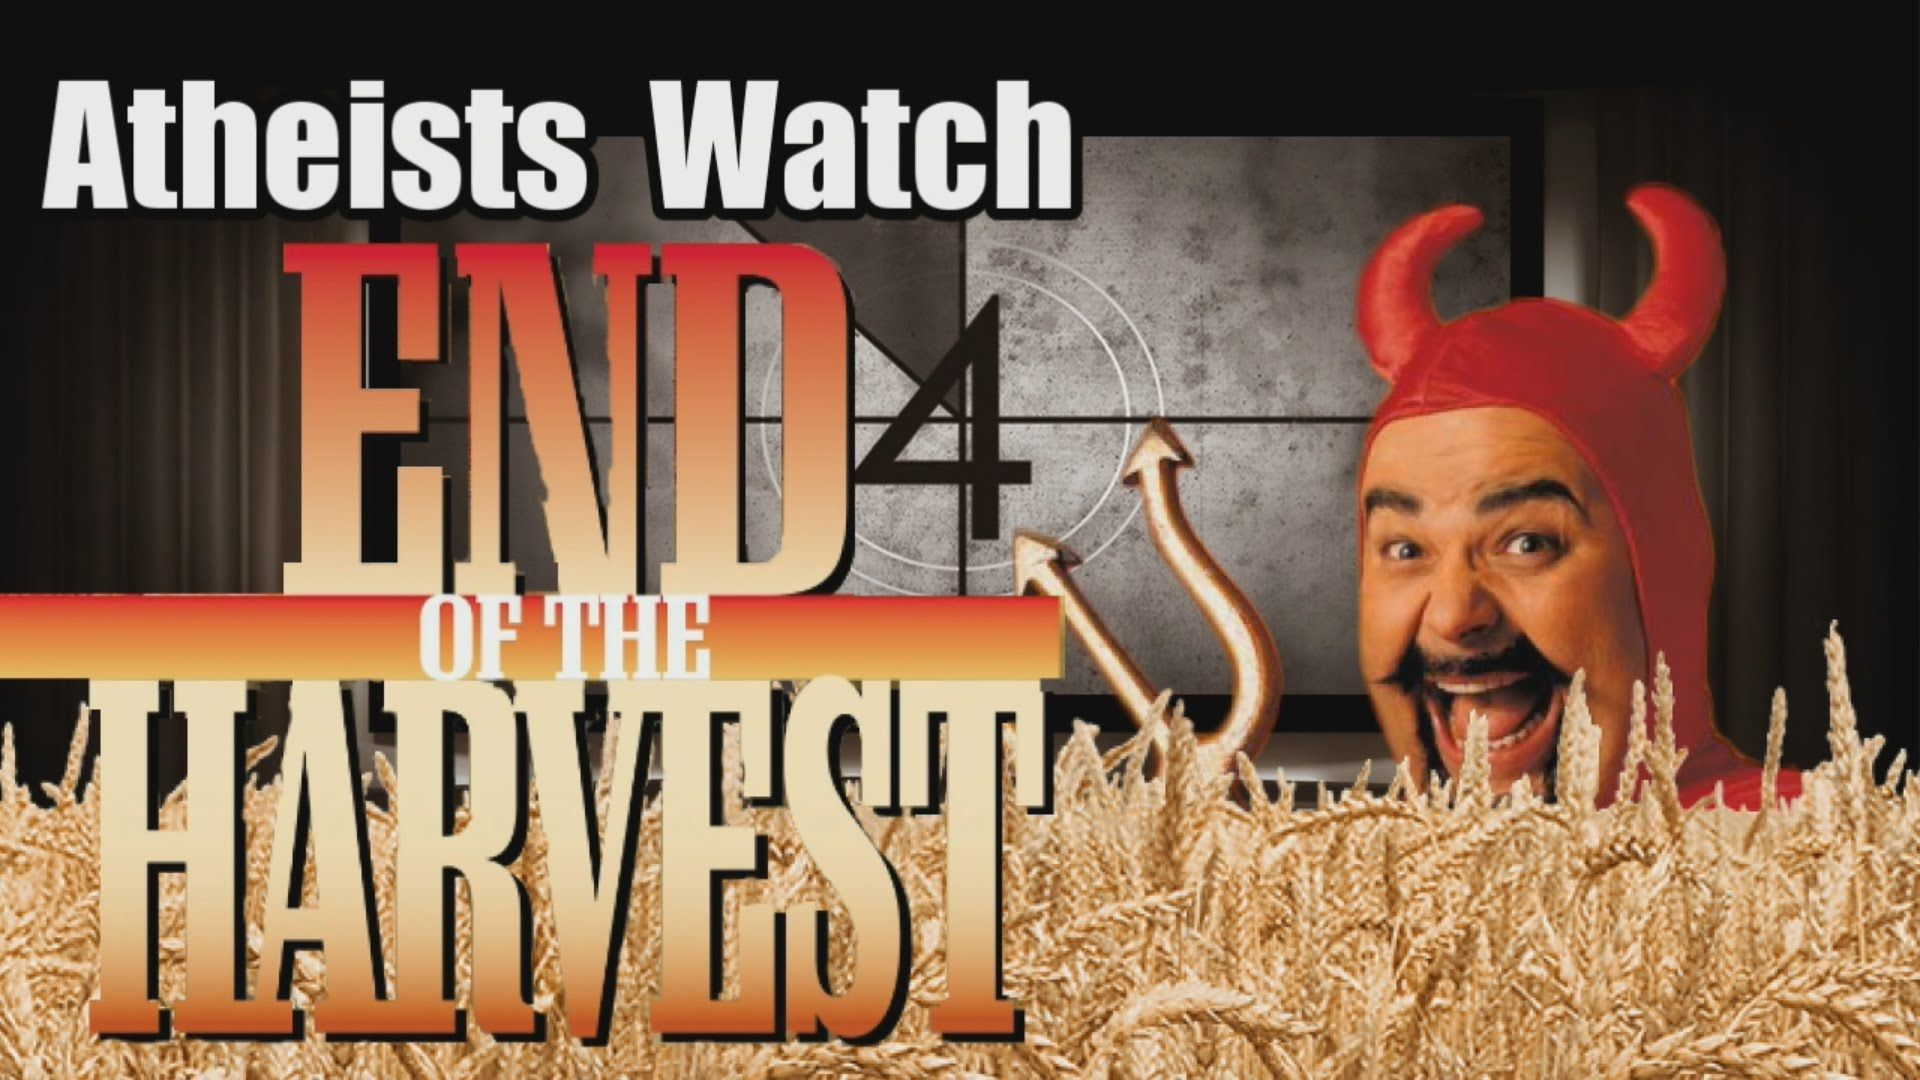 Atheists Watch End of the Harvest (With images) Atheist